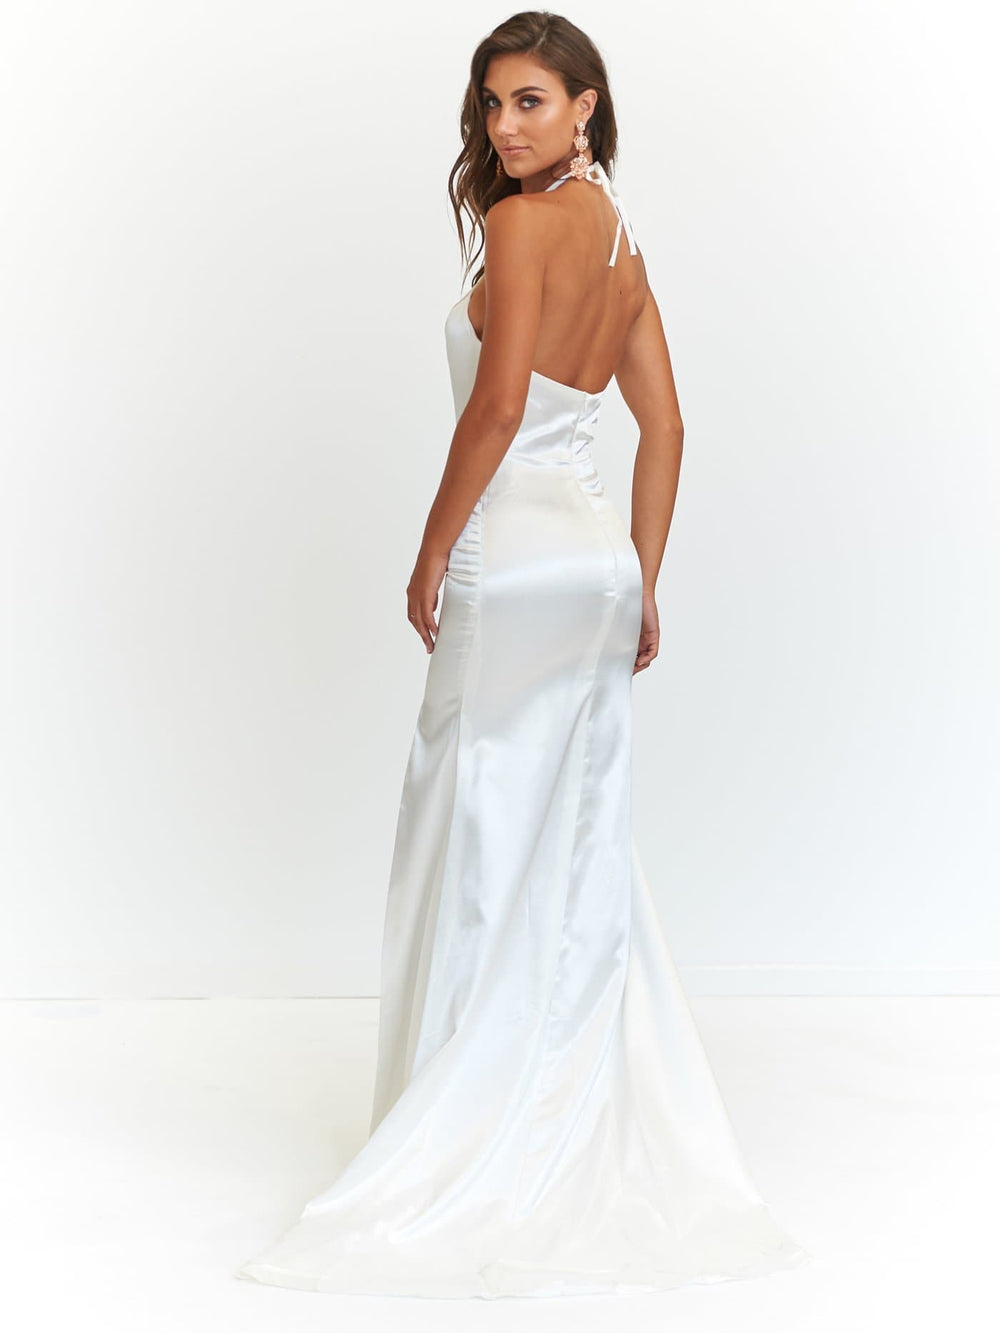 0a632aab28 ... A N Alyssa - White Satin Formal Dress with V-Neckline and Side Slit ...